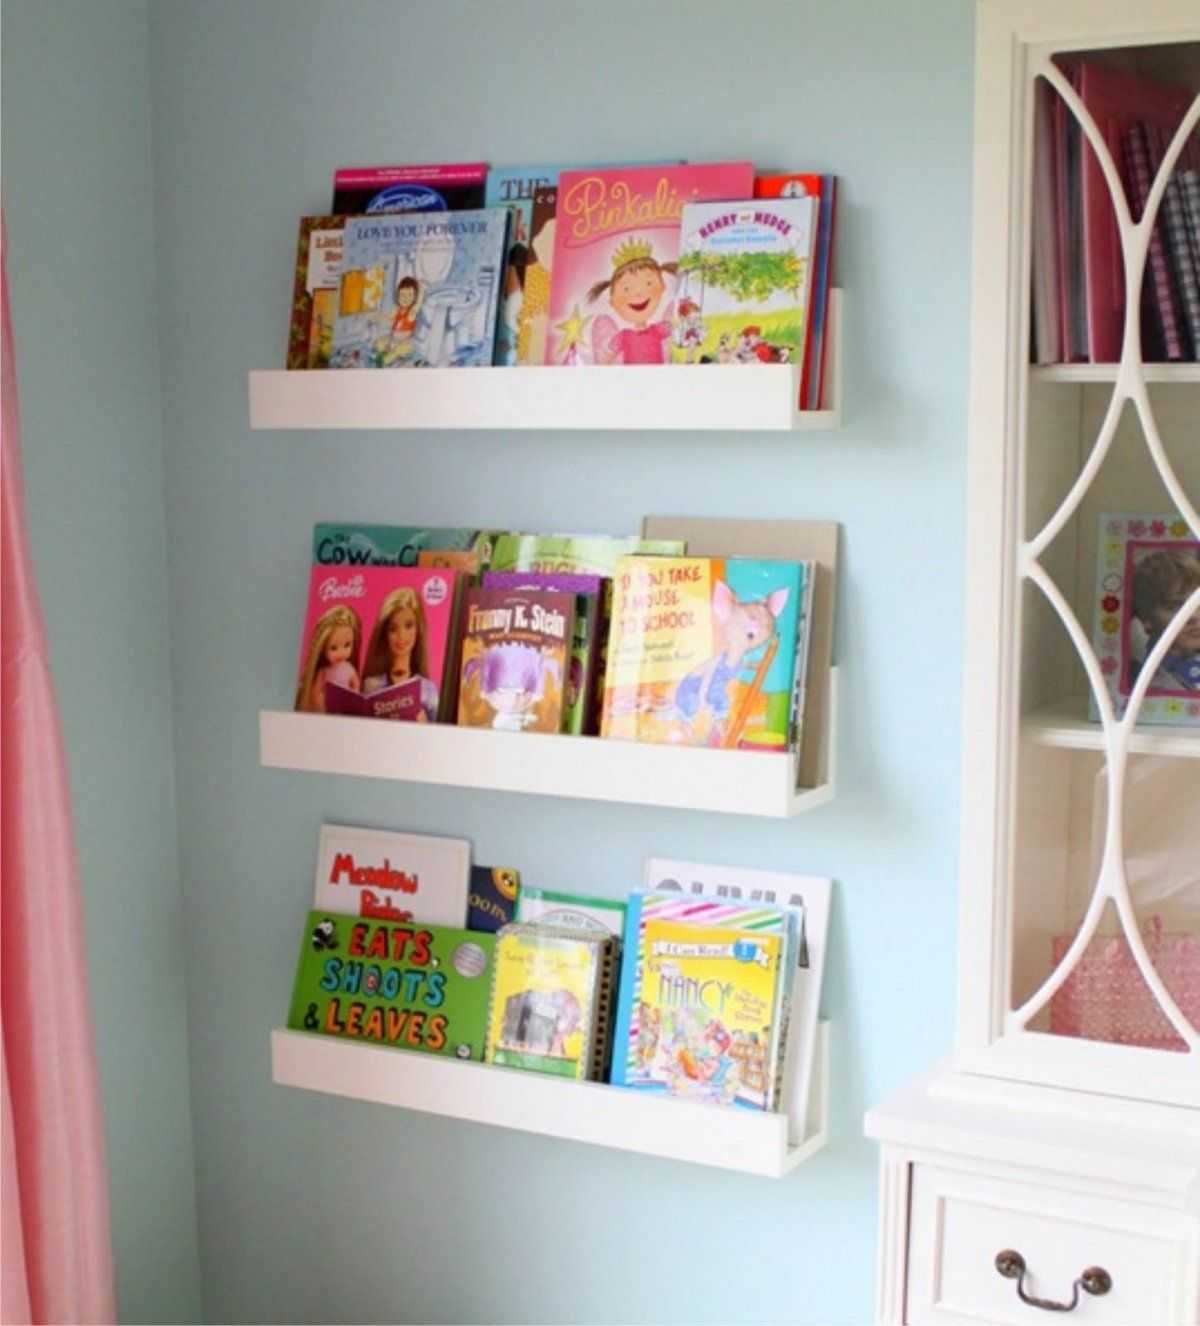 DIY White Minimalist Wall-Mounted Book Shelves for Little Girls Bedroom  Decoration - Decoration | - DIY White Minimalist Wall-Mounted Book Shelves For Little Girls